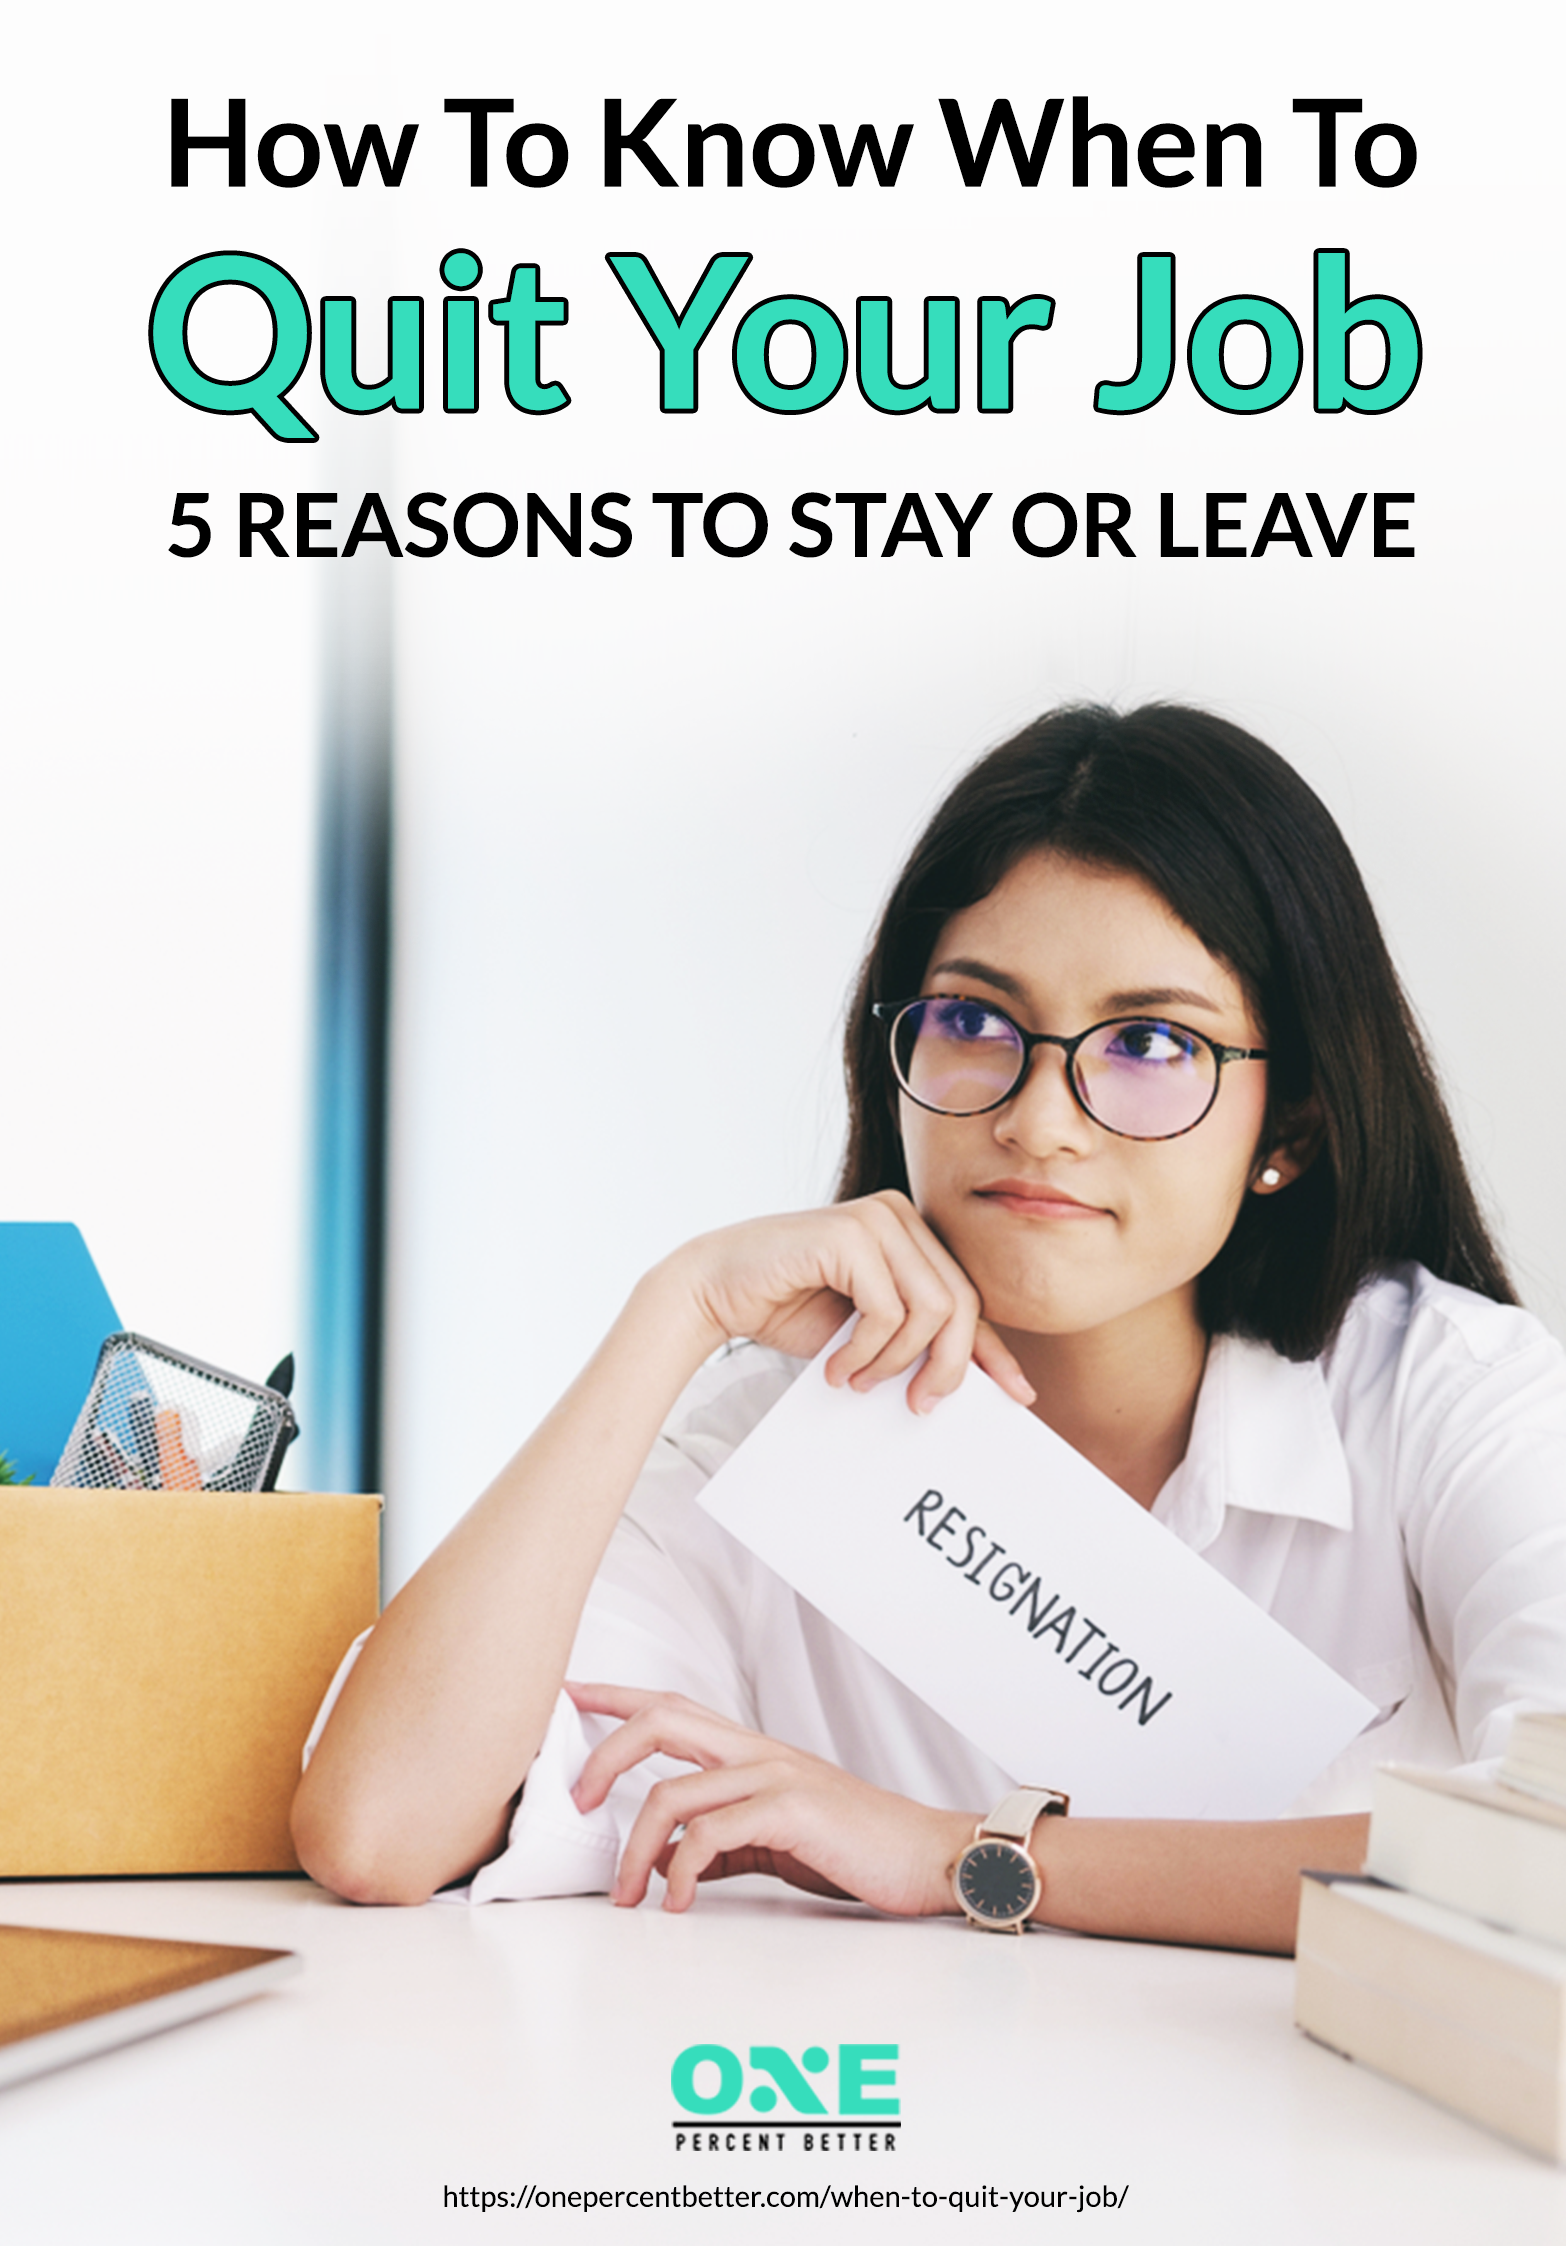 How To Know When To Quit Your Job: 13 Reasons To Stay Or Leave [INFOGRAPHIC] | https://onepercentbetter.com/when-to-quit-your-job/